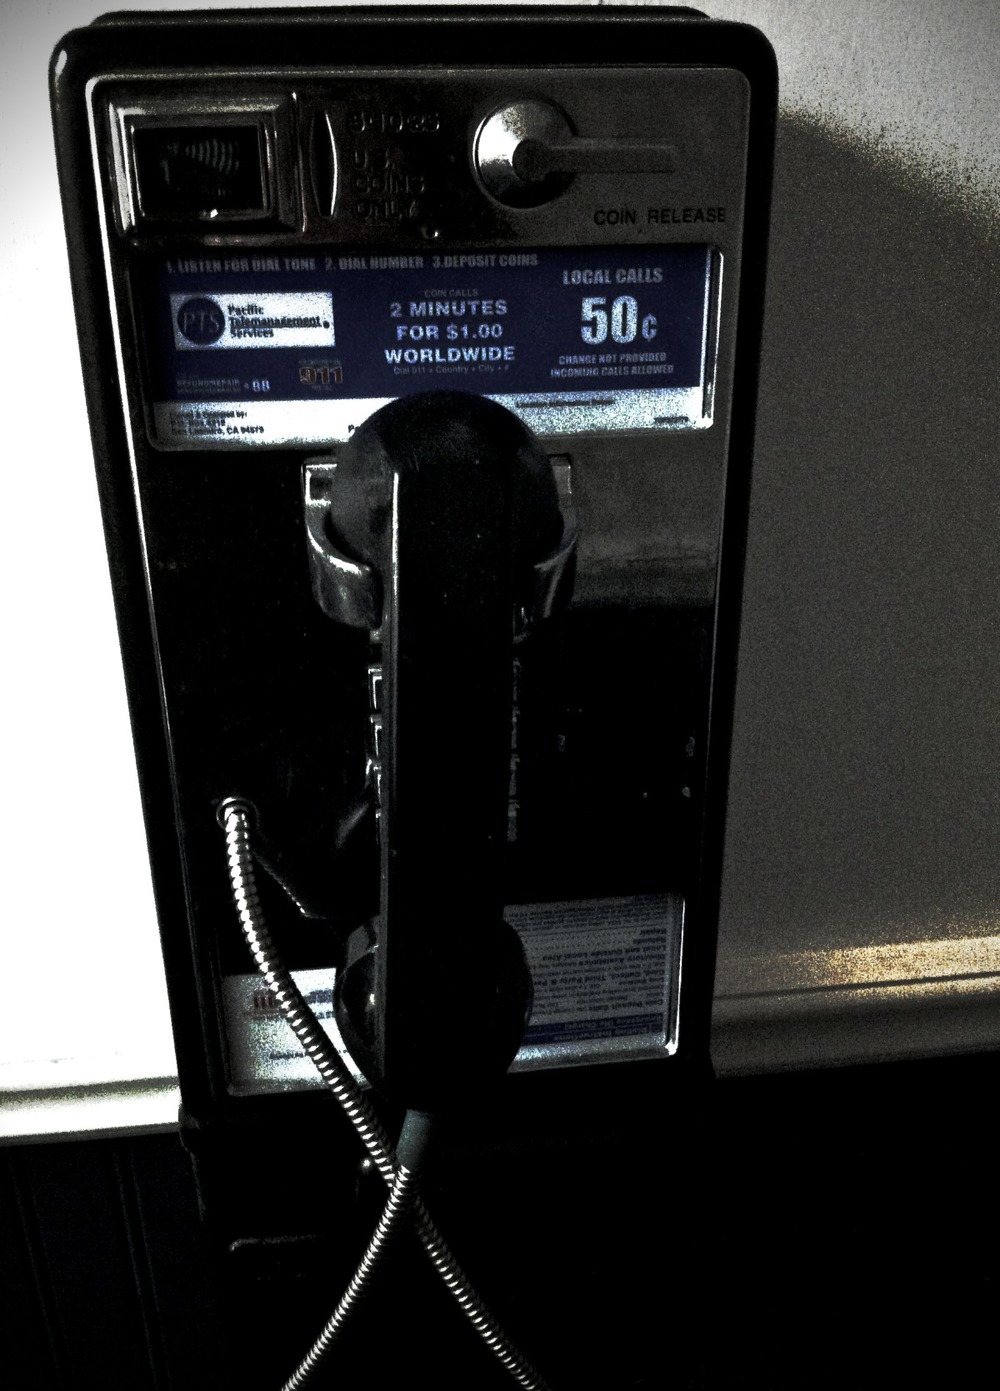 payphone export july 2012 1.jpg